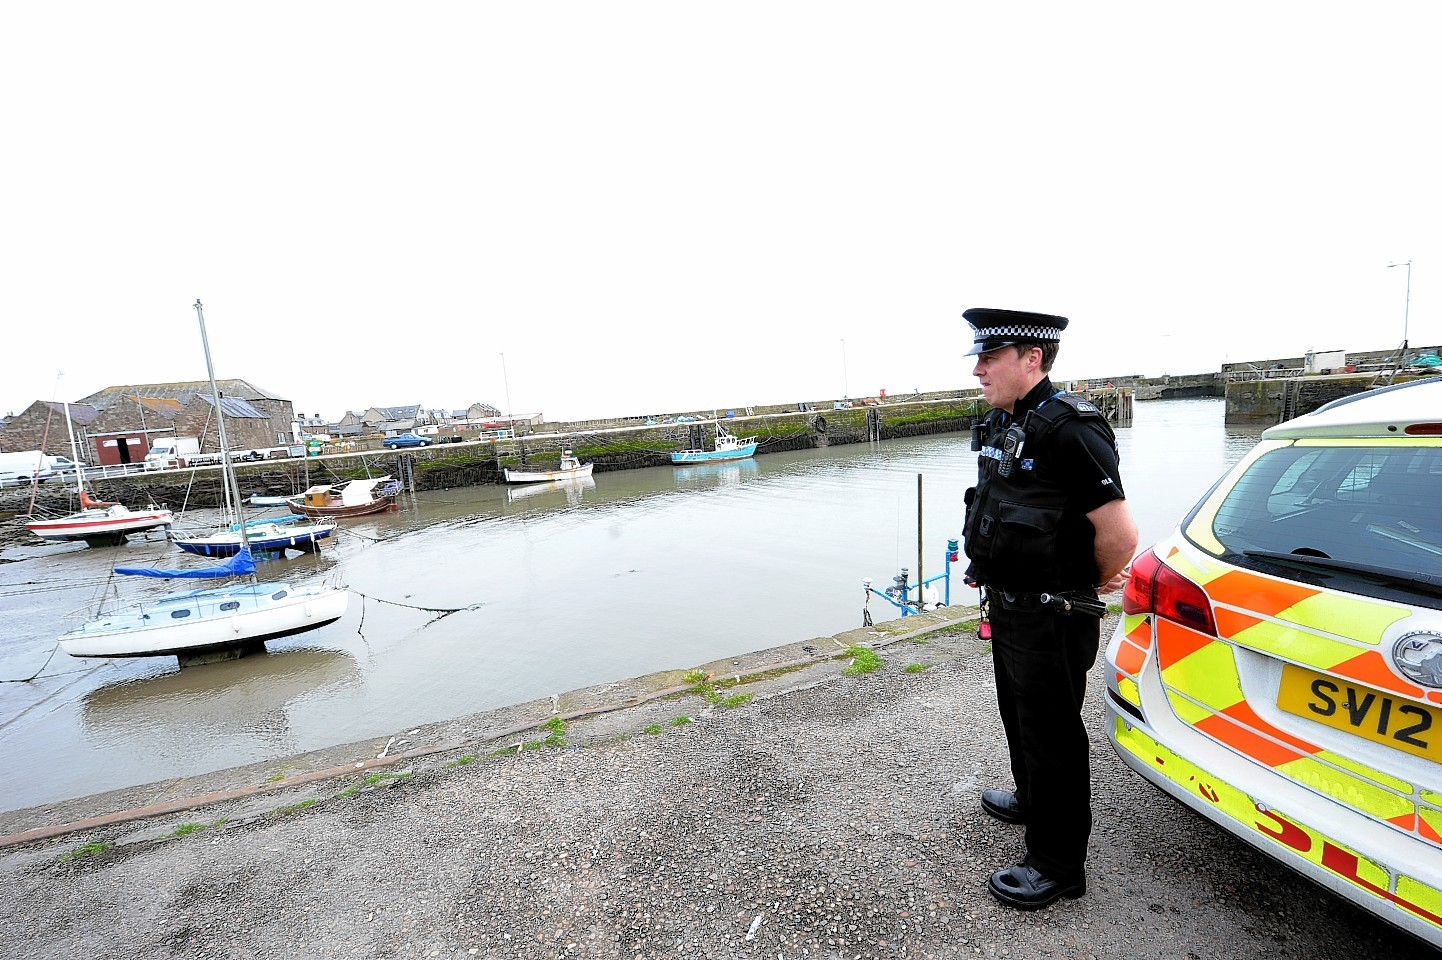 A police officer at Gourdon Harbour on May 20, when the fishermen went missing